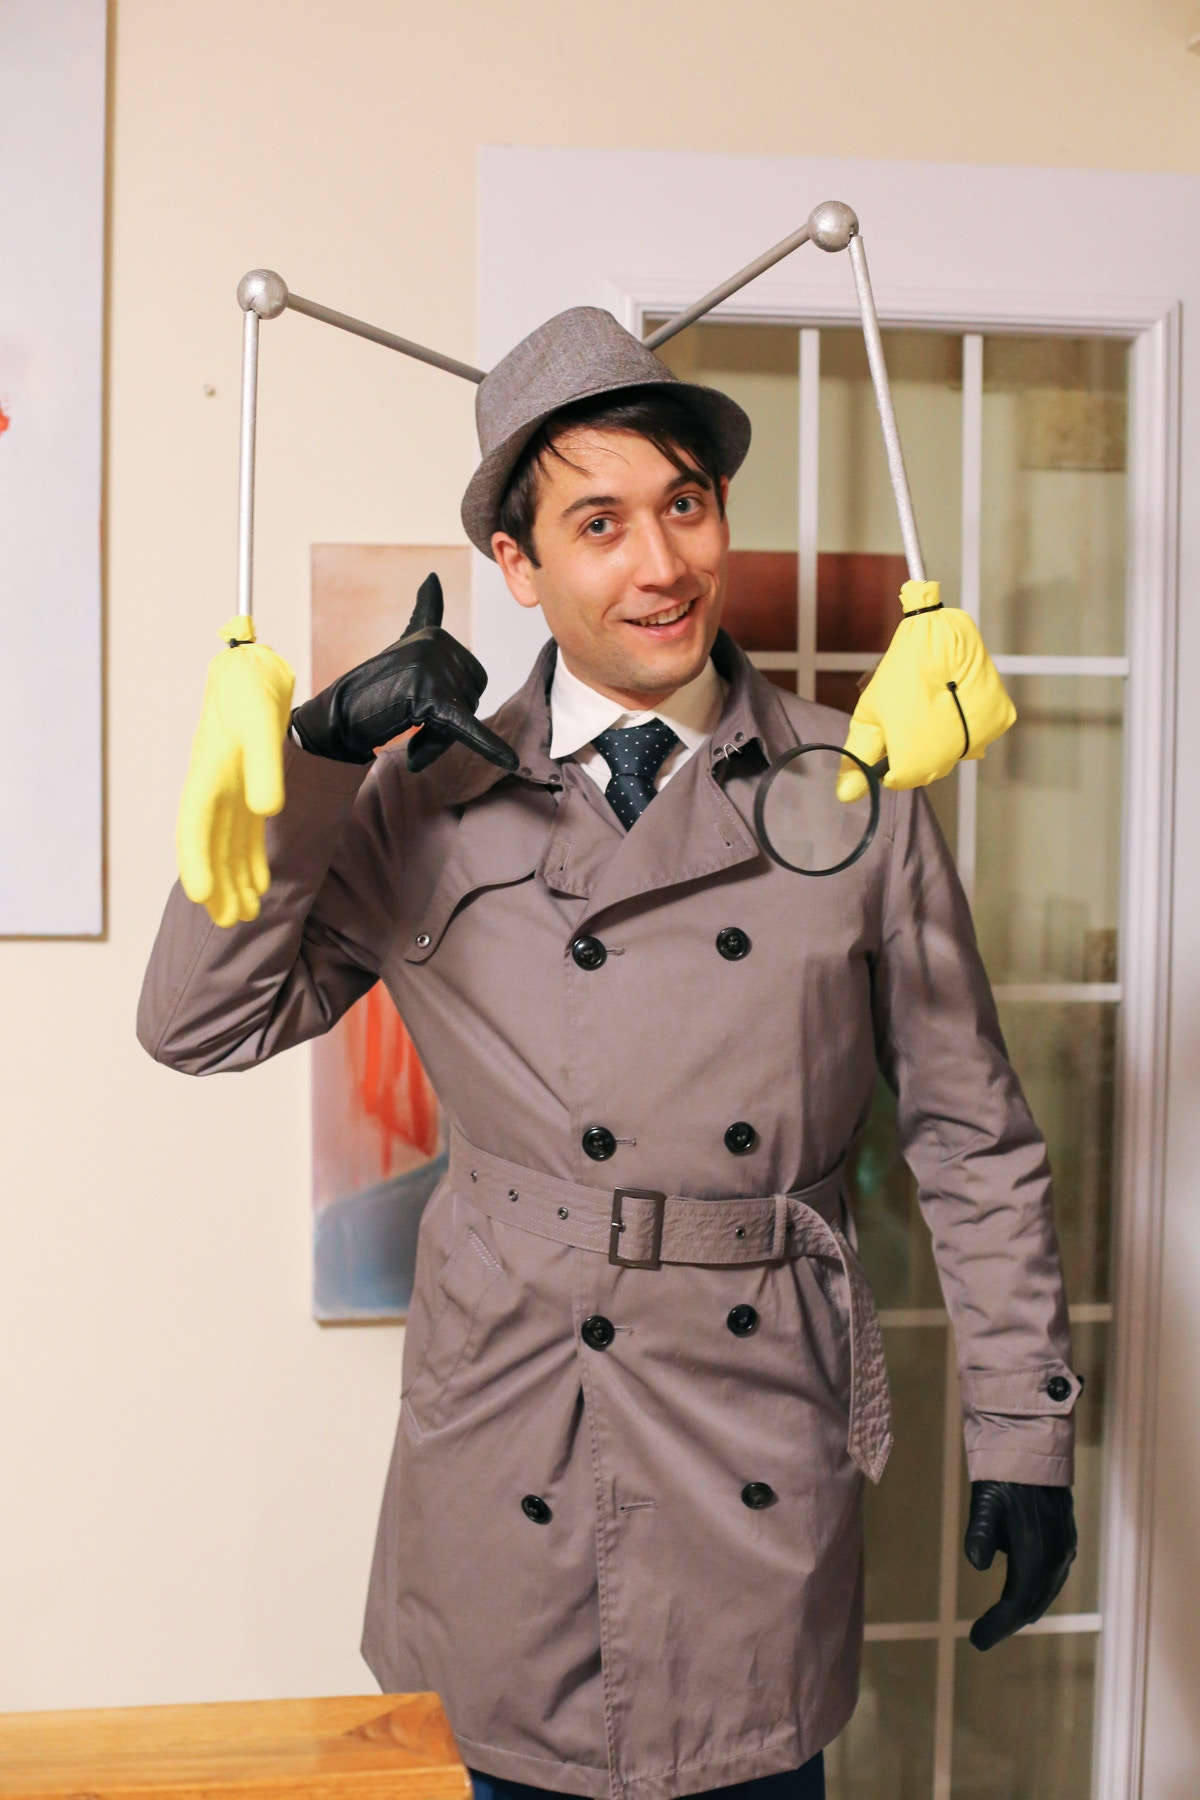 Inspector Gadget DIY Halloween Costume: to make this Inspector Gadget hat you need a fedora, wooden dowels, styrofoam balls, a magnifying glass and rubber gloves.